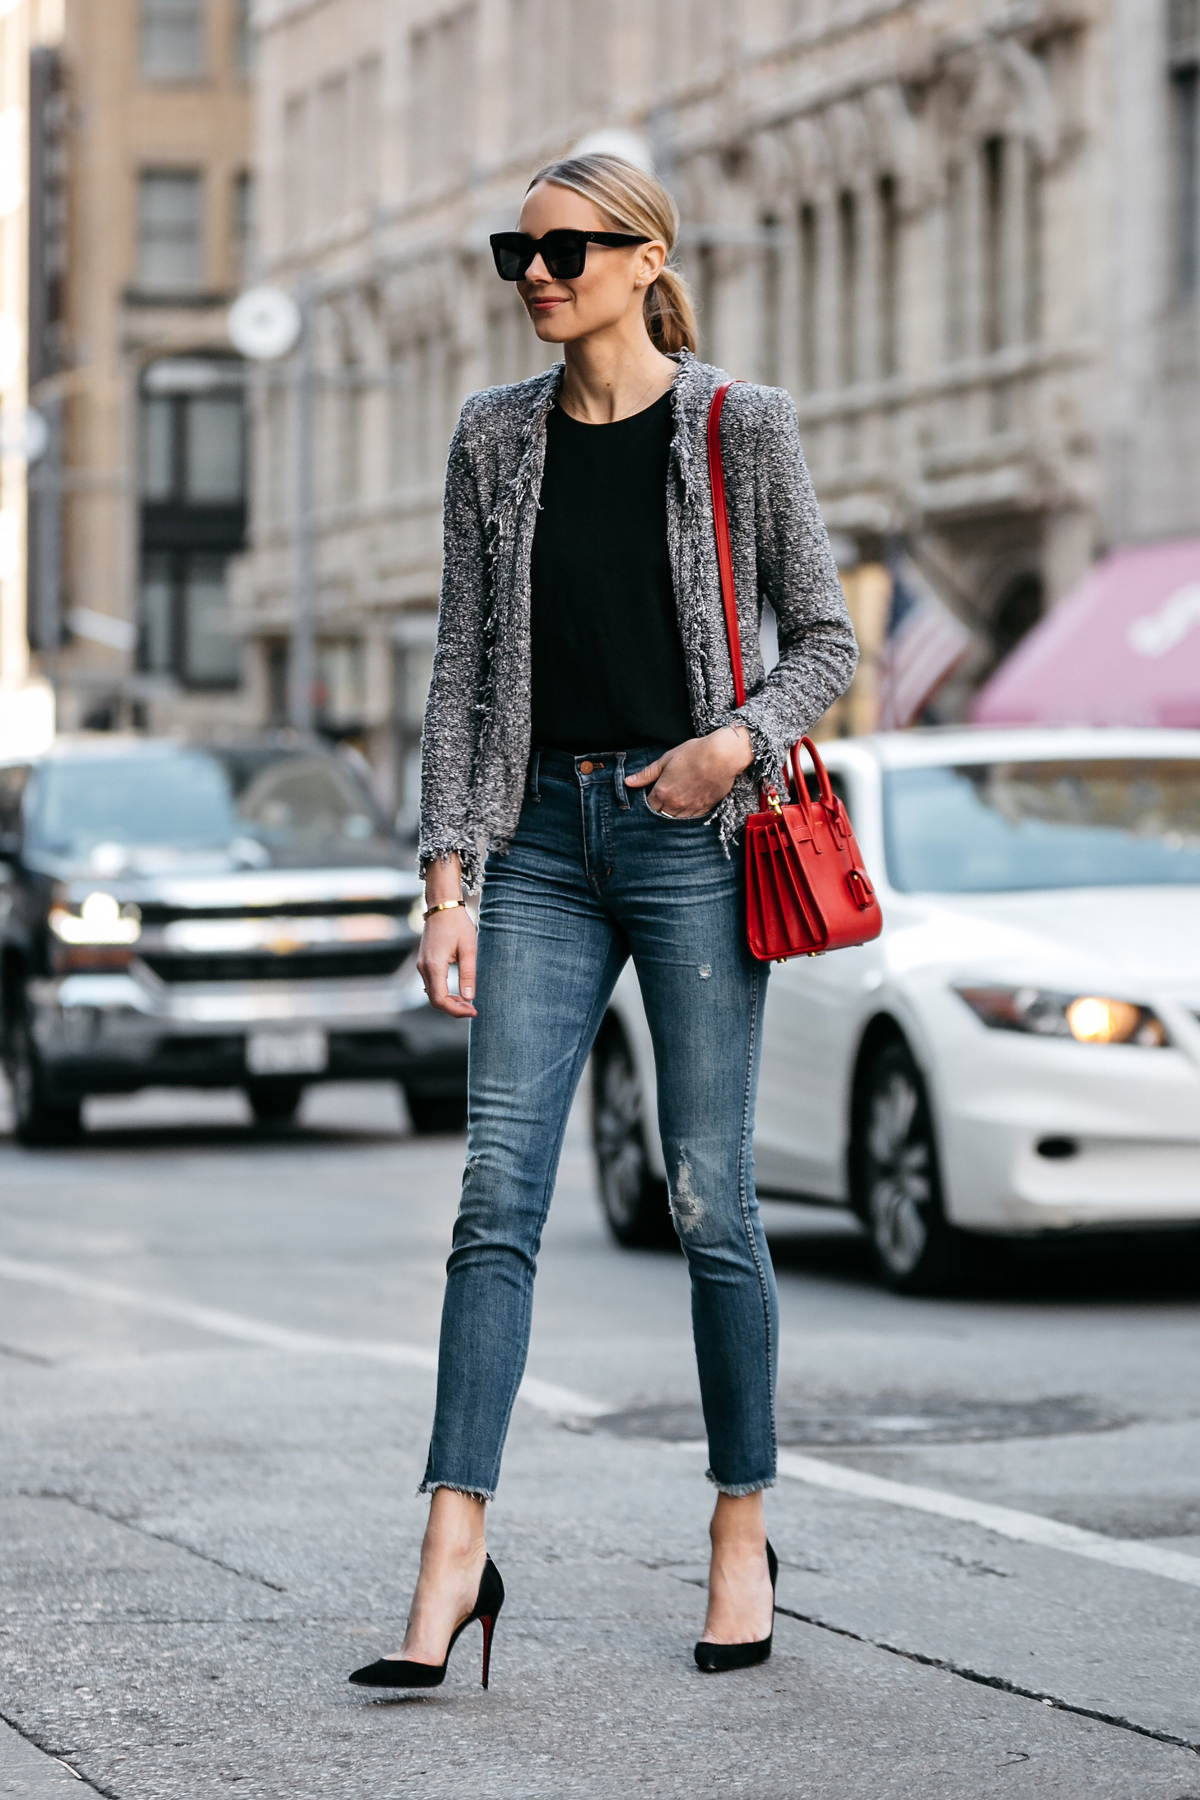 Blonde Woman Wearing IRO Shavanix Grey Tweed Jacket Black Top Denim Ripped Skinny Jeans Christian Louboutin Black Pumps Saint Laurent Sac De Jour Red Handbag Fashion Jackson Dallas Blogger Fashion Blogger Street Style